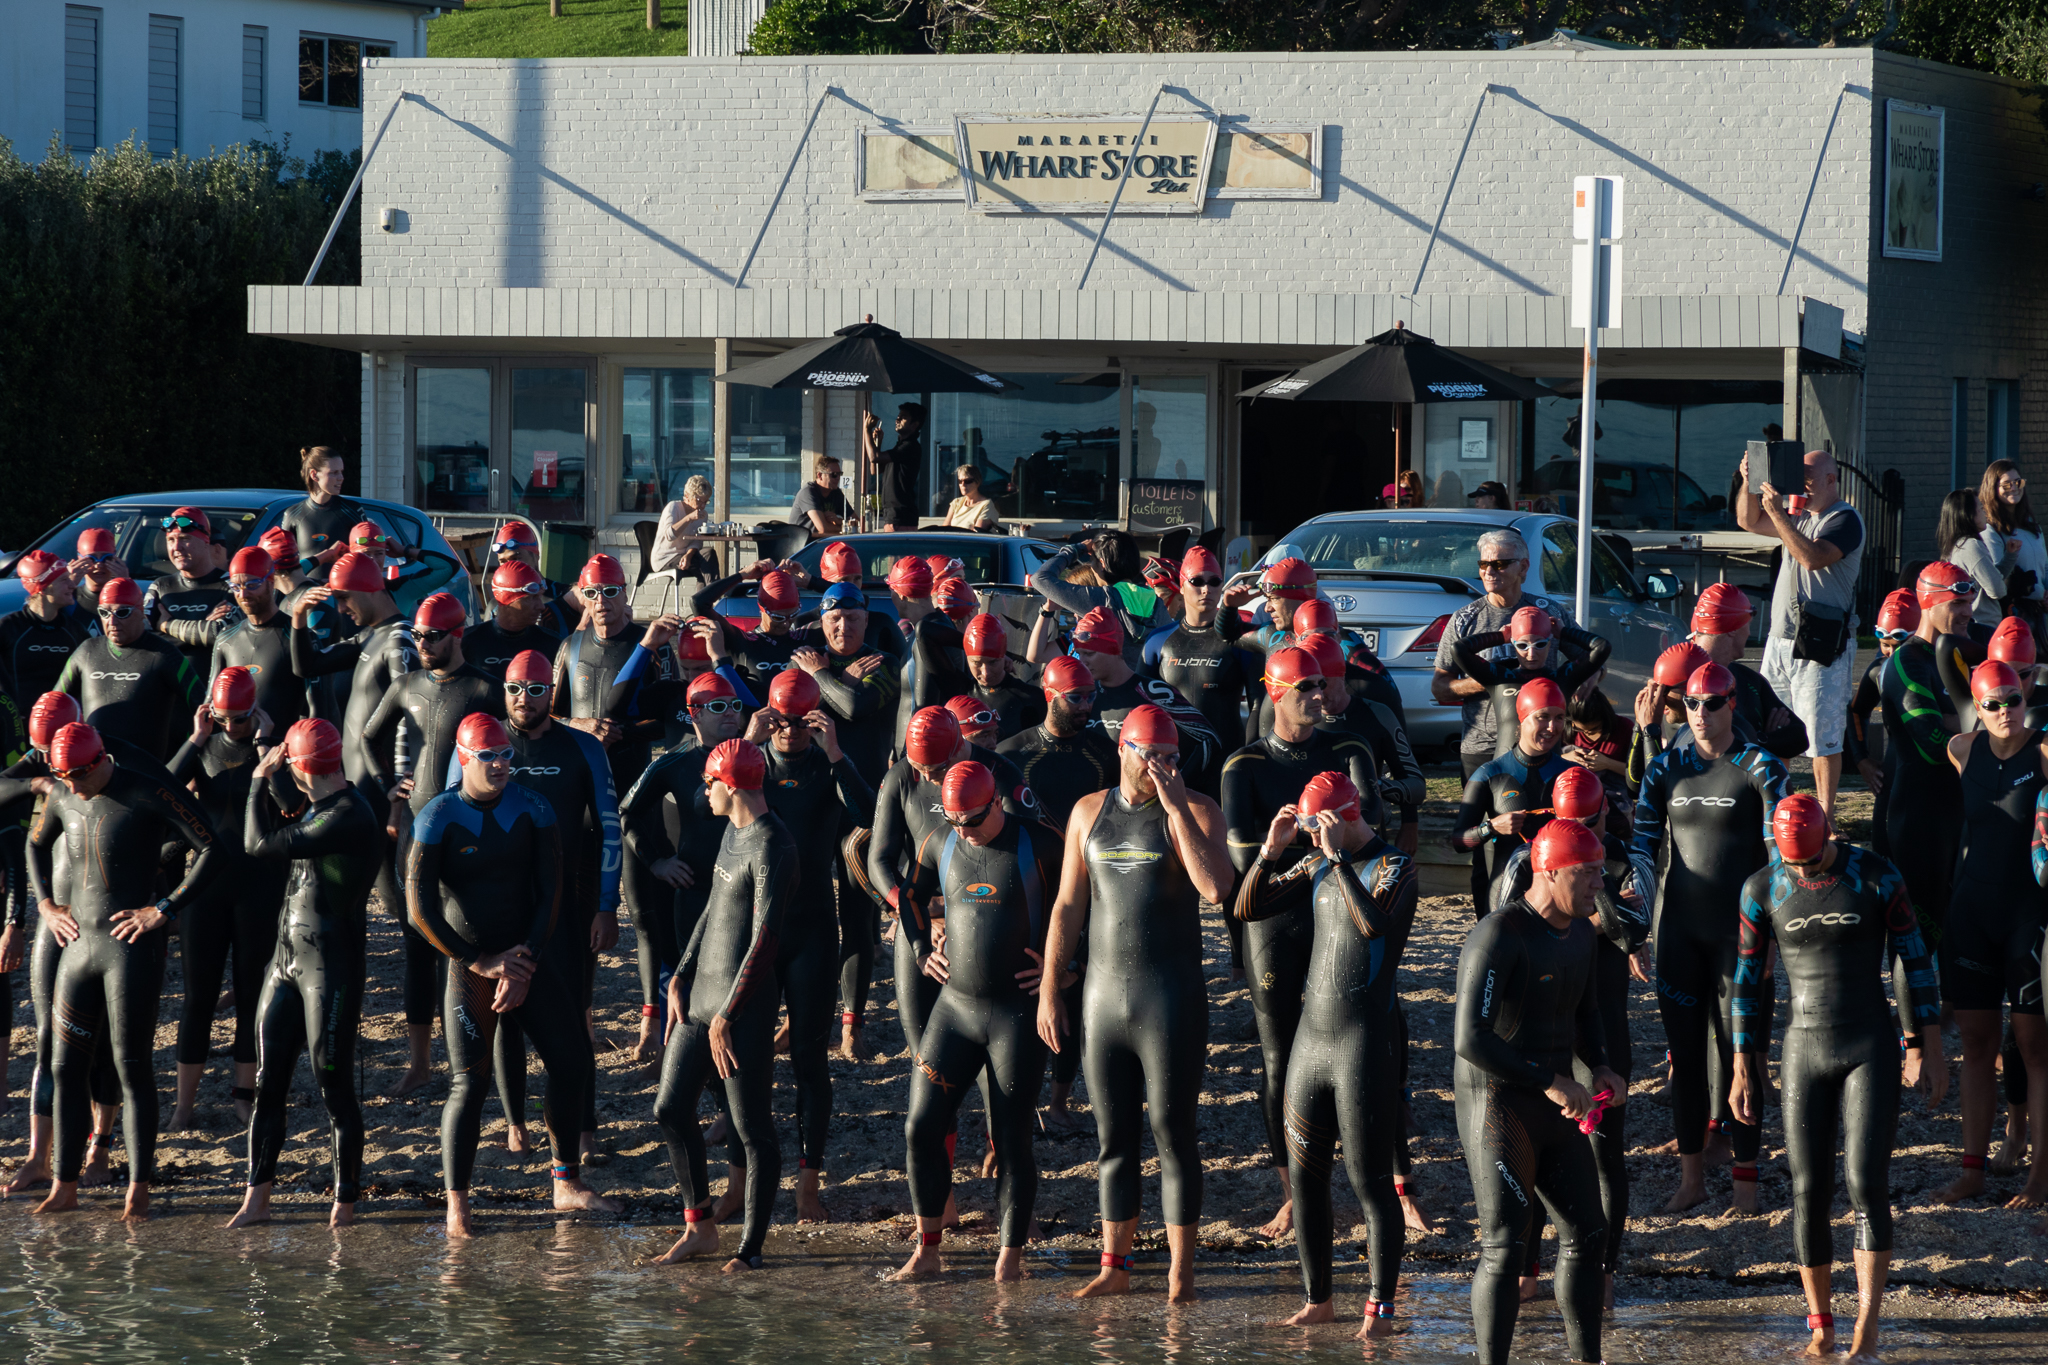 start line of triathlon in new zealand